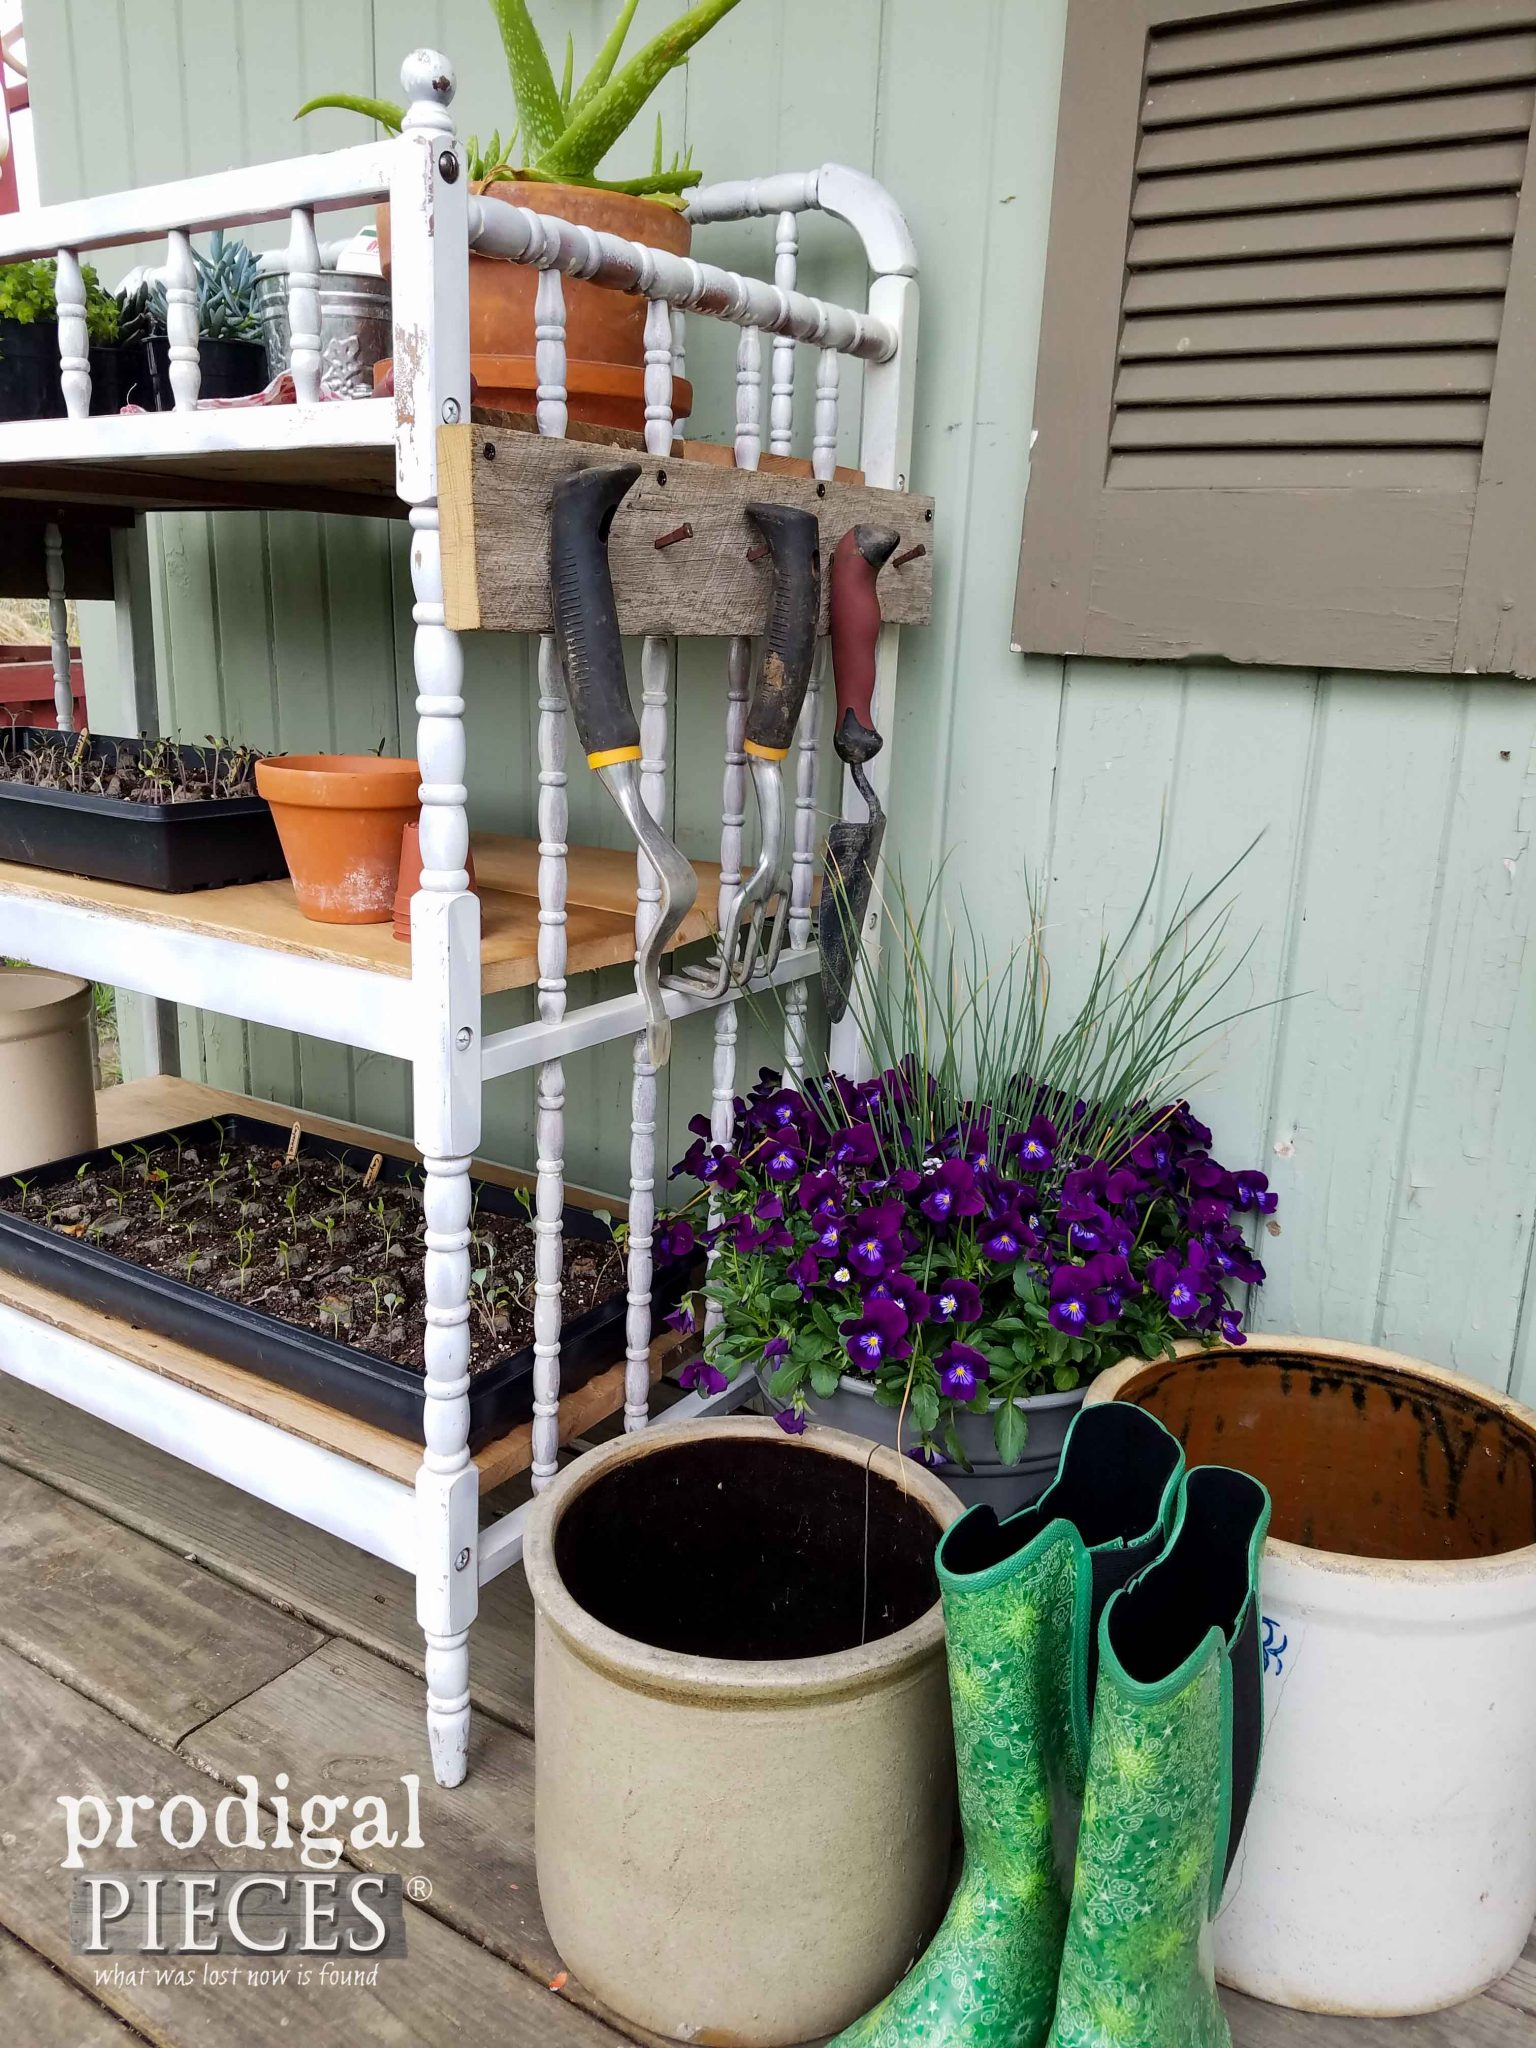 Tool Rack on Repurposed Potting Bench by Prodigal Pieces | prodigalpieces.com